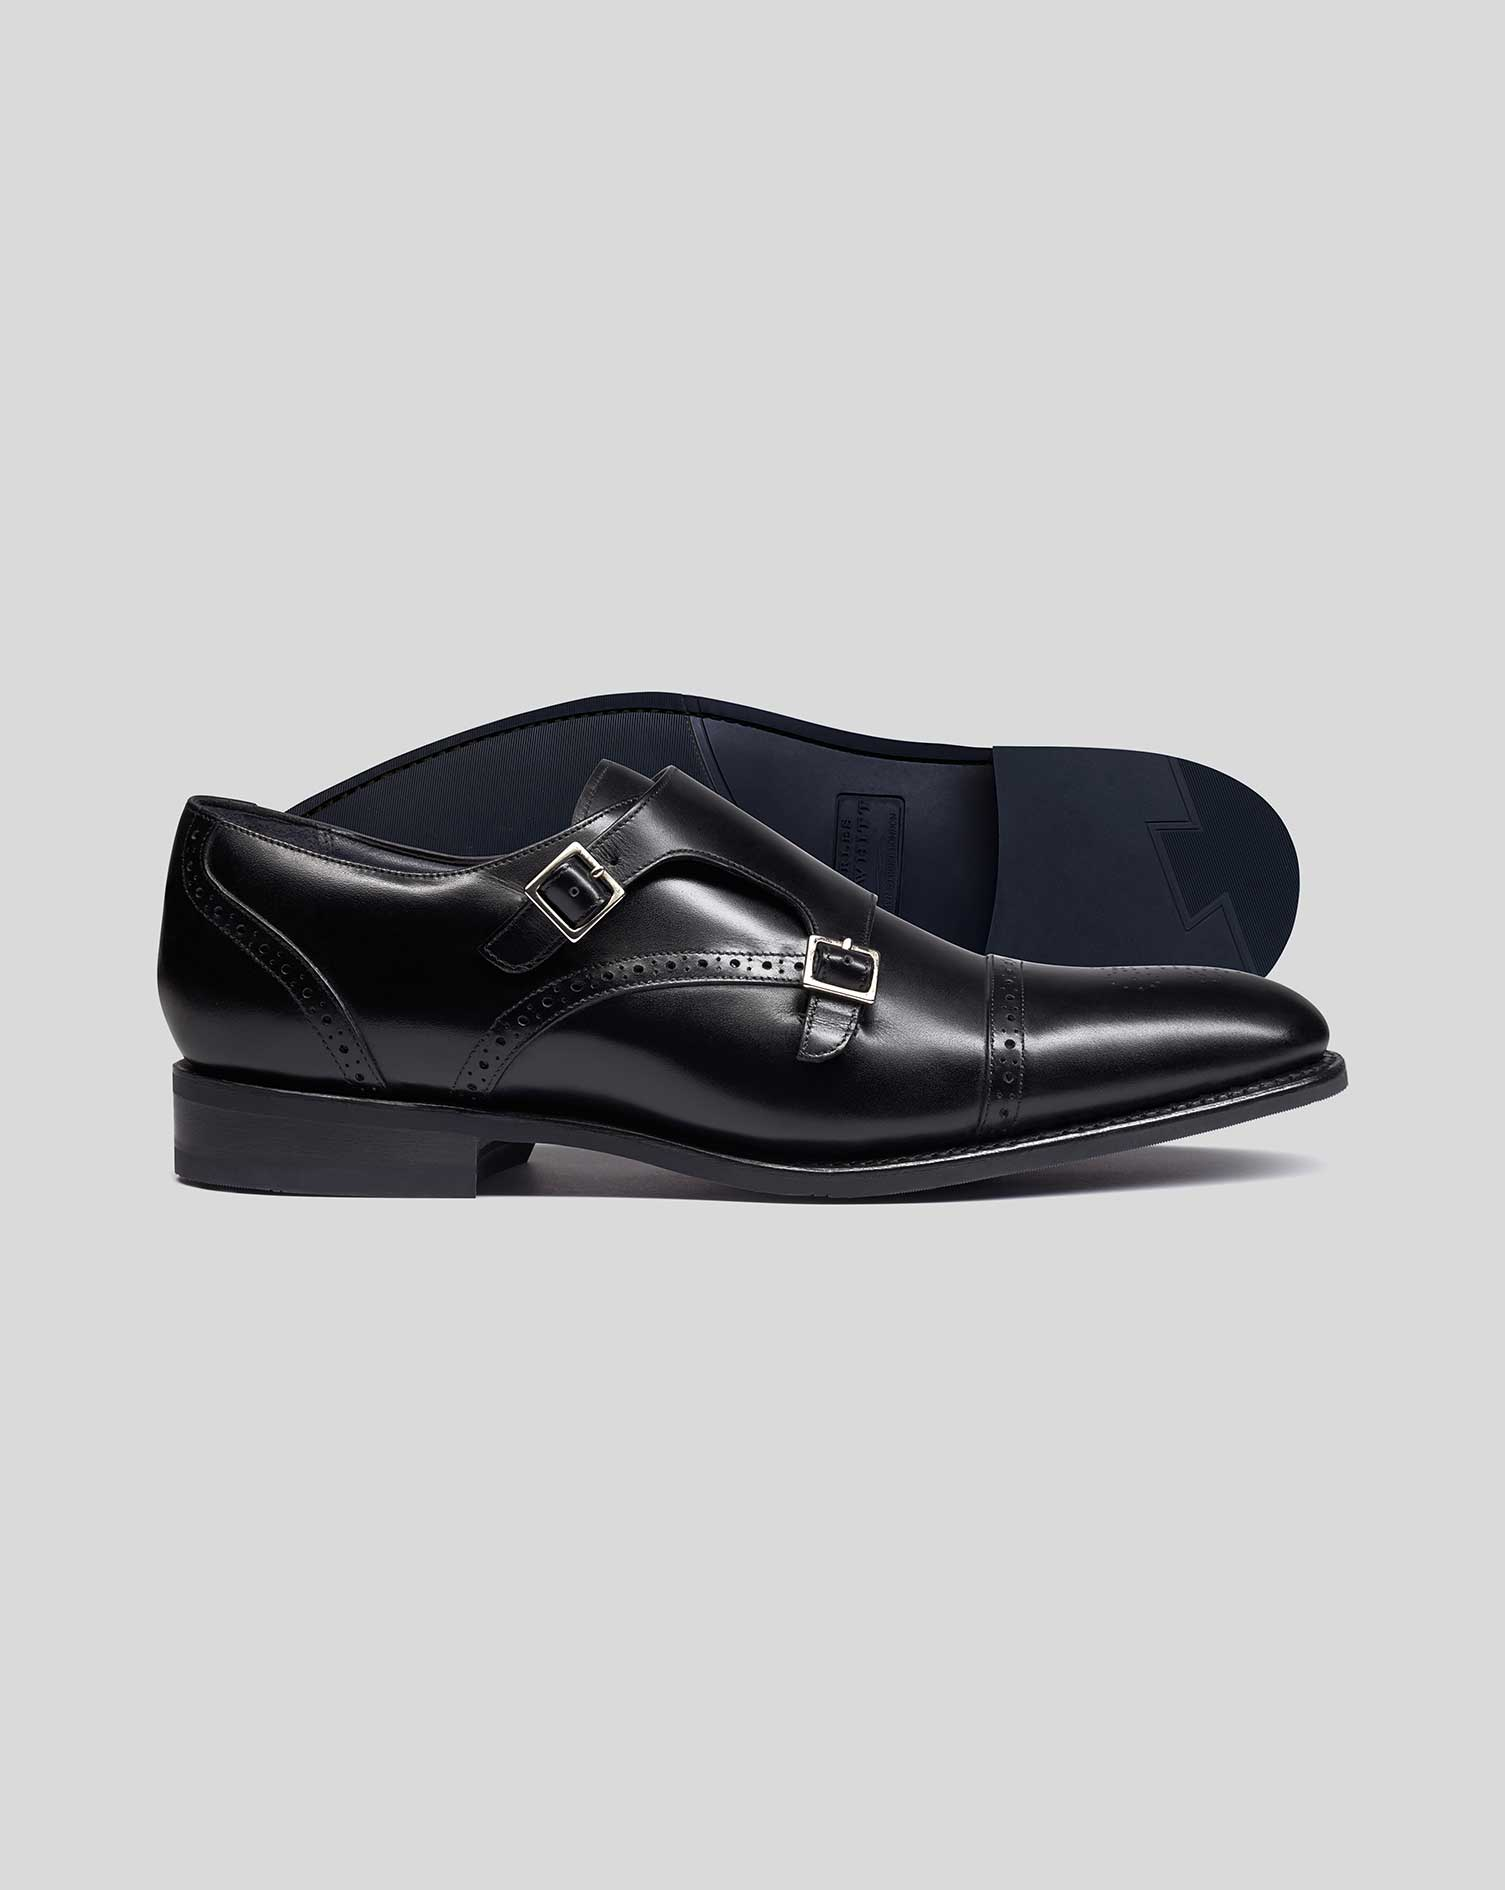 Black Goodyear Welted Double Buckle Monk Performance Shoe Size 9 R by Charles Tyrwhitt